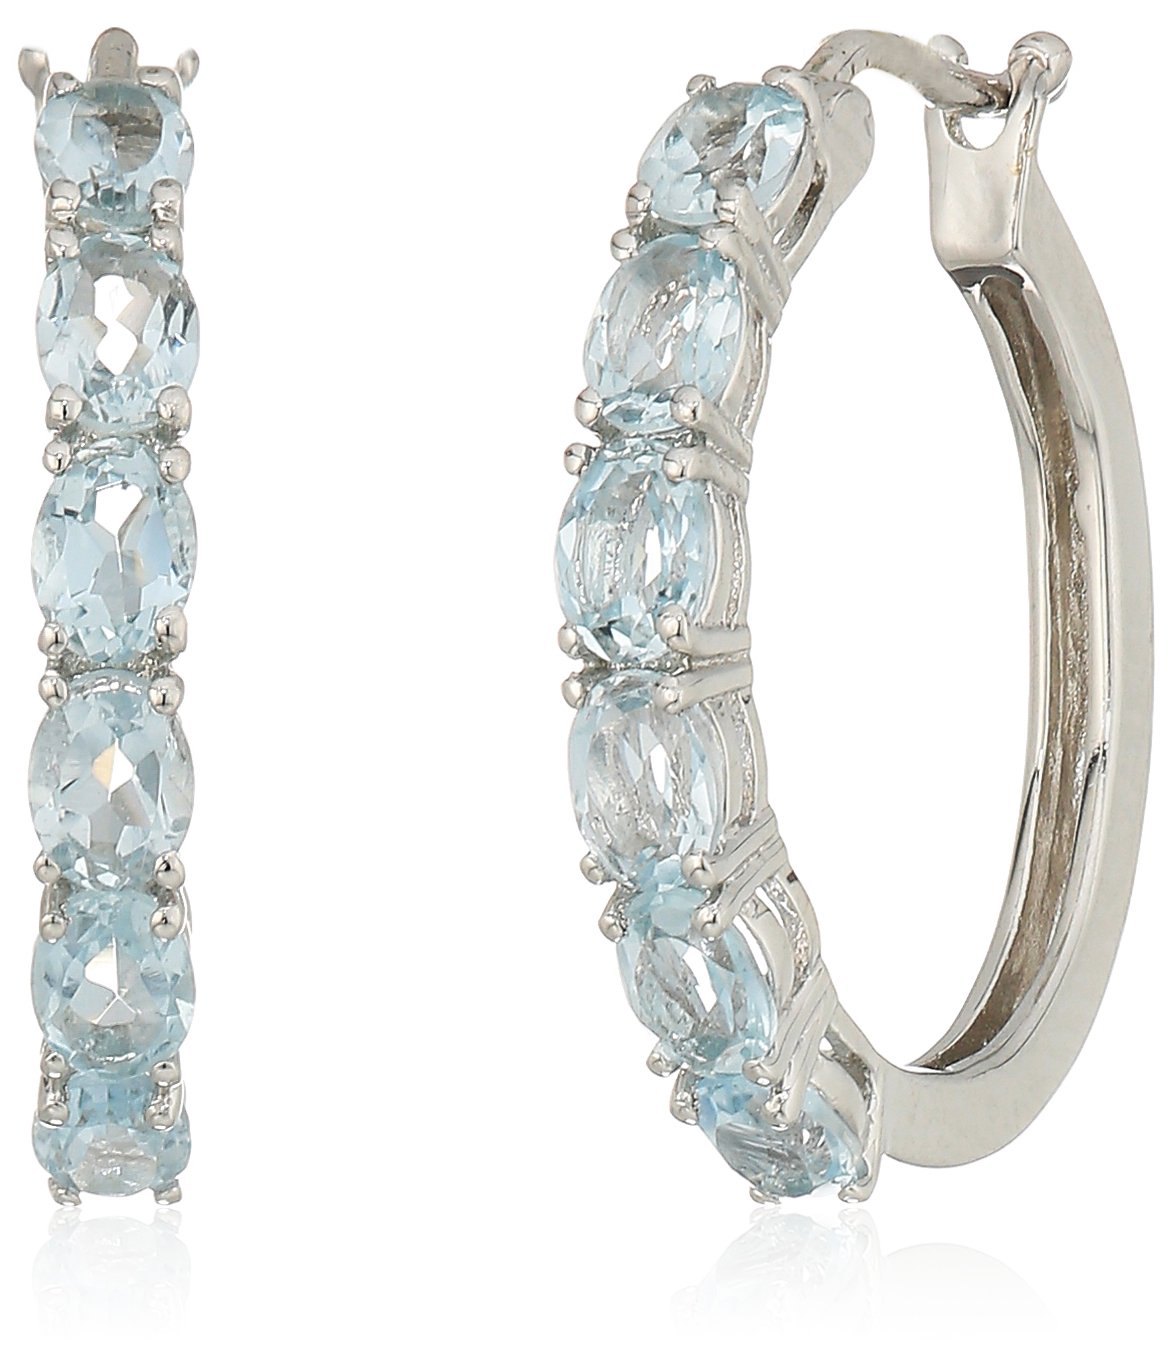 Sterling Silver Oval Hoop Earrings, 3/4 3/4 Amazon Collection E2543WAQUA